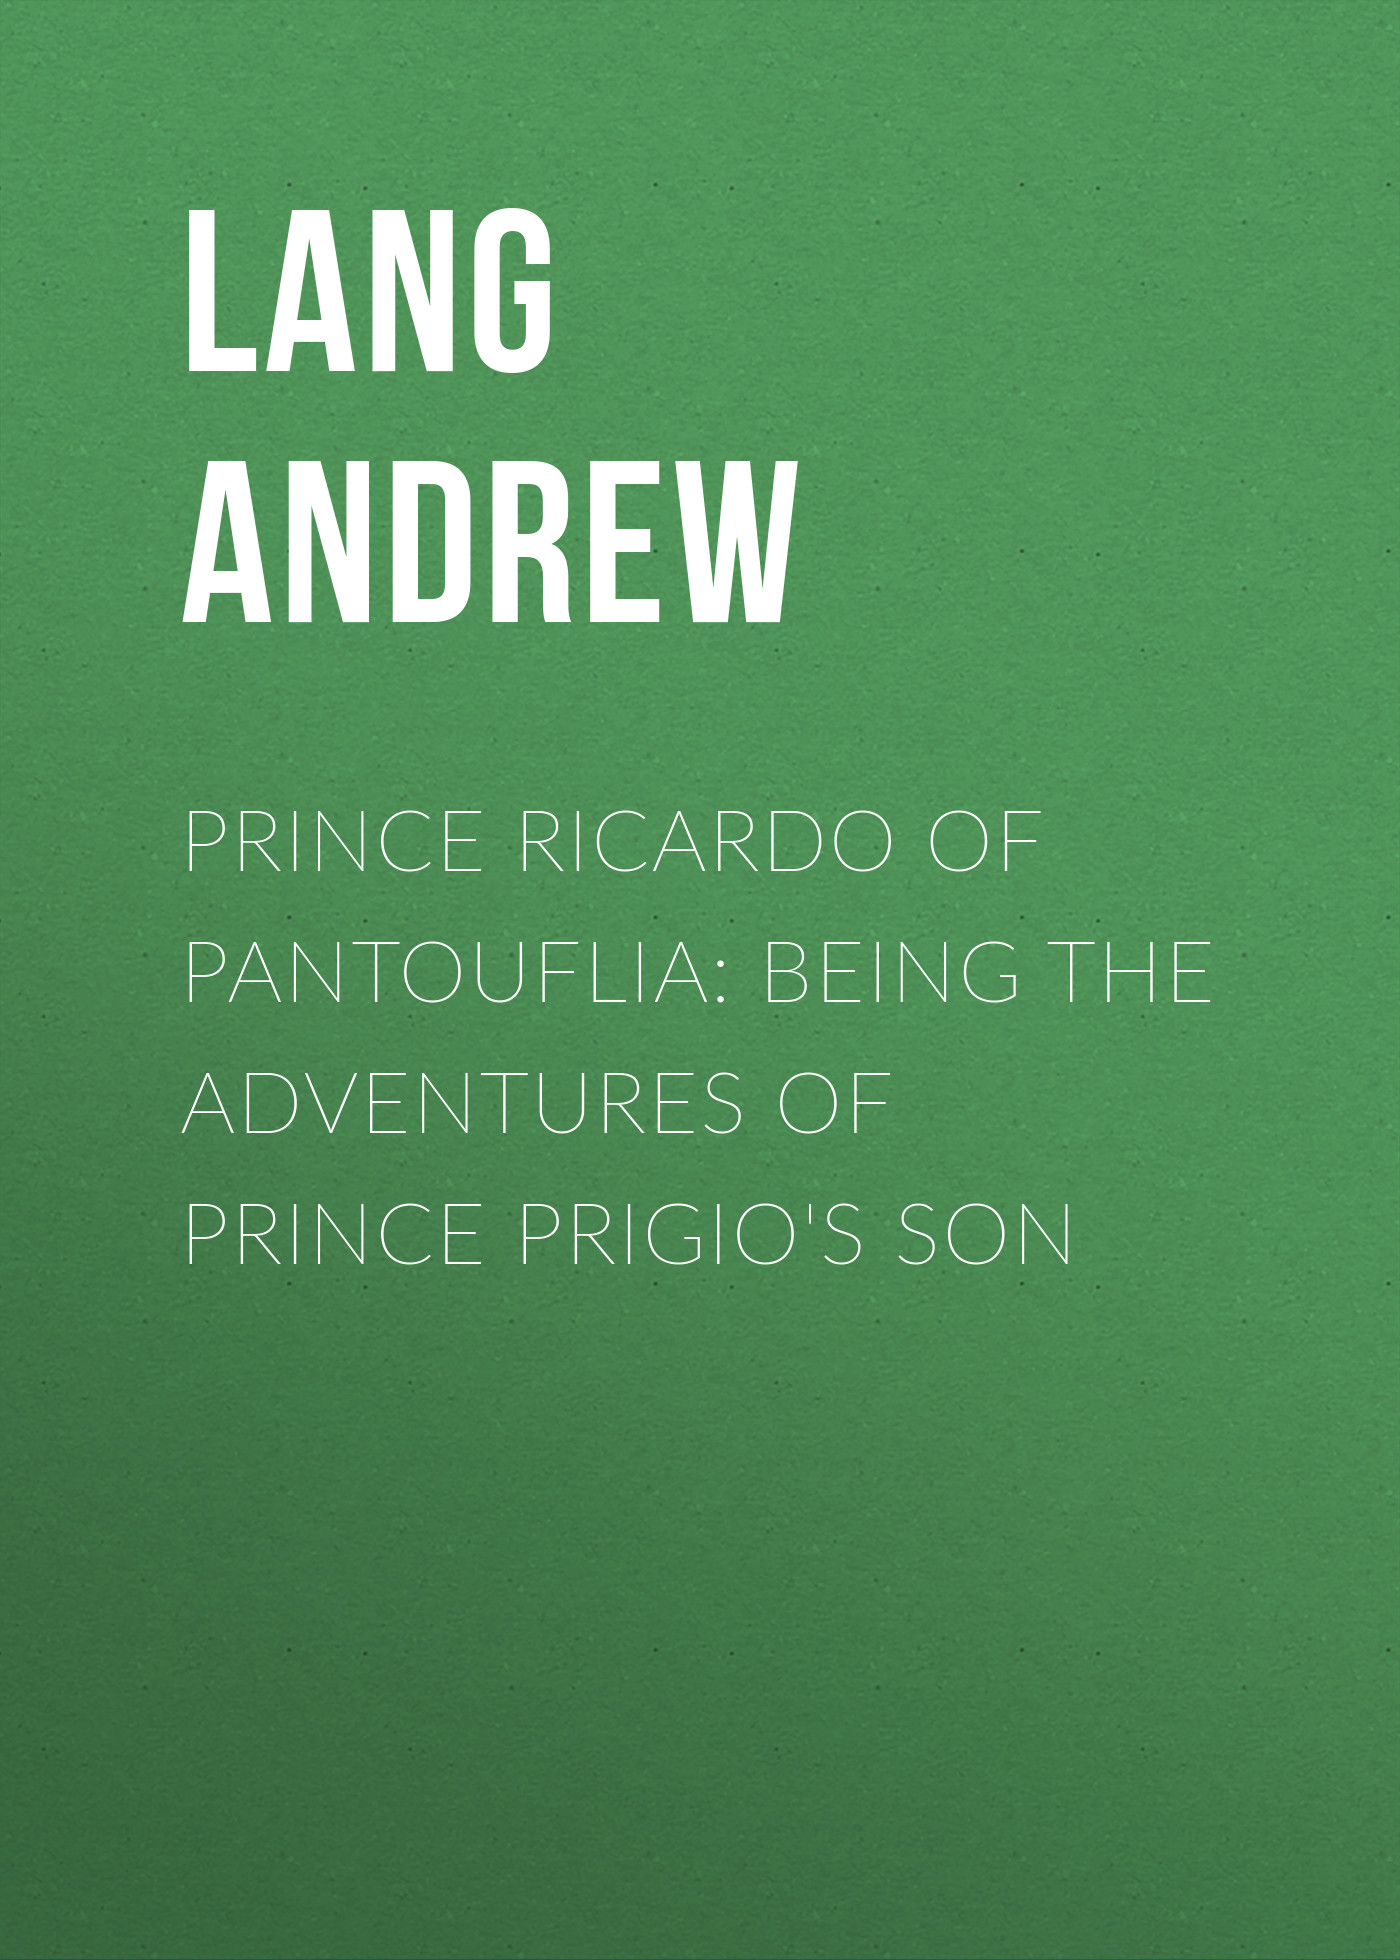 Lang Andrew Prince Ricardo of Pantouflia: Being the Adventures of Prince Prigio's Son lang andrew adventures among books